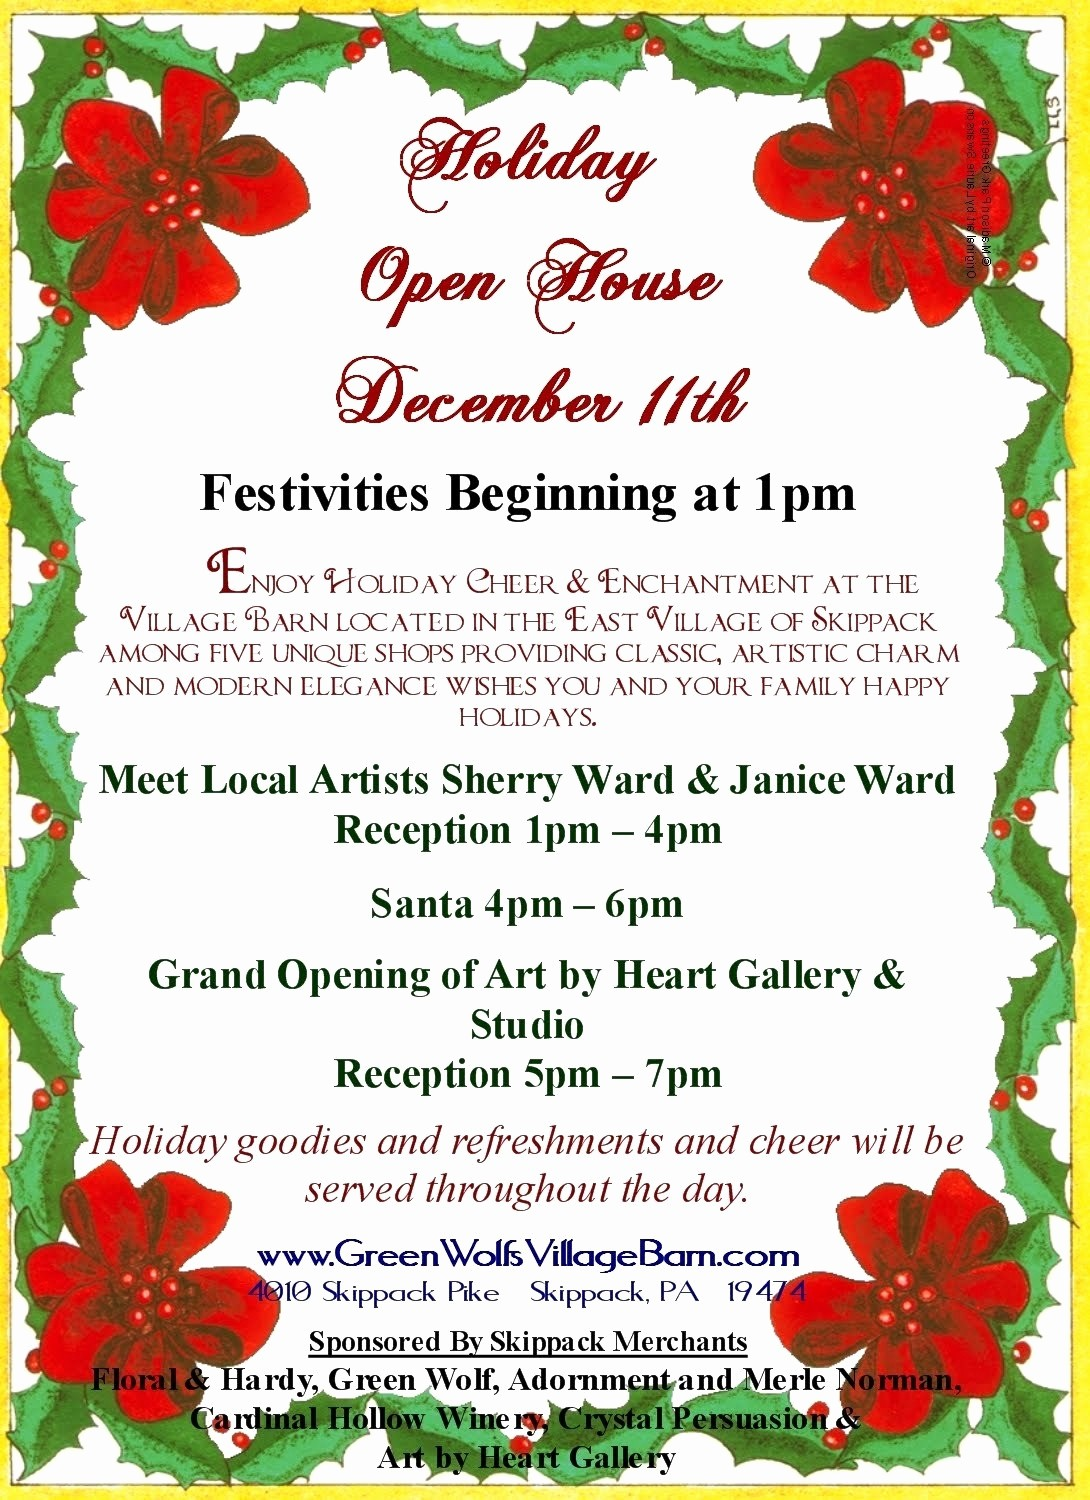 Free Holiday Flyer Templates Word New Christmas Open House Flyer Templ with Free Open House